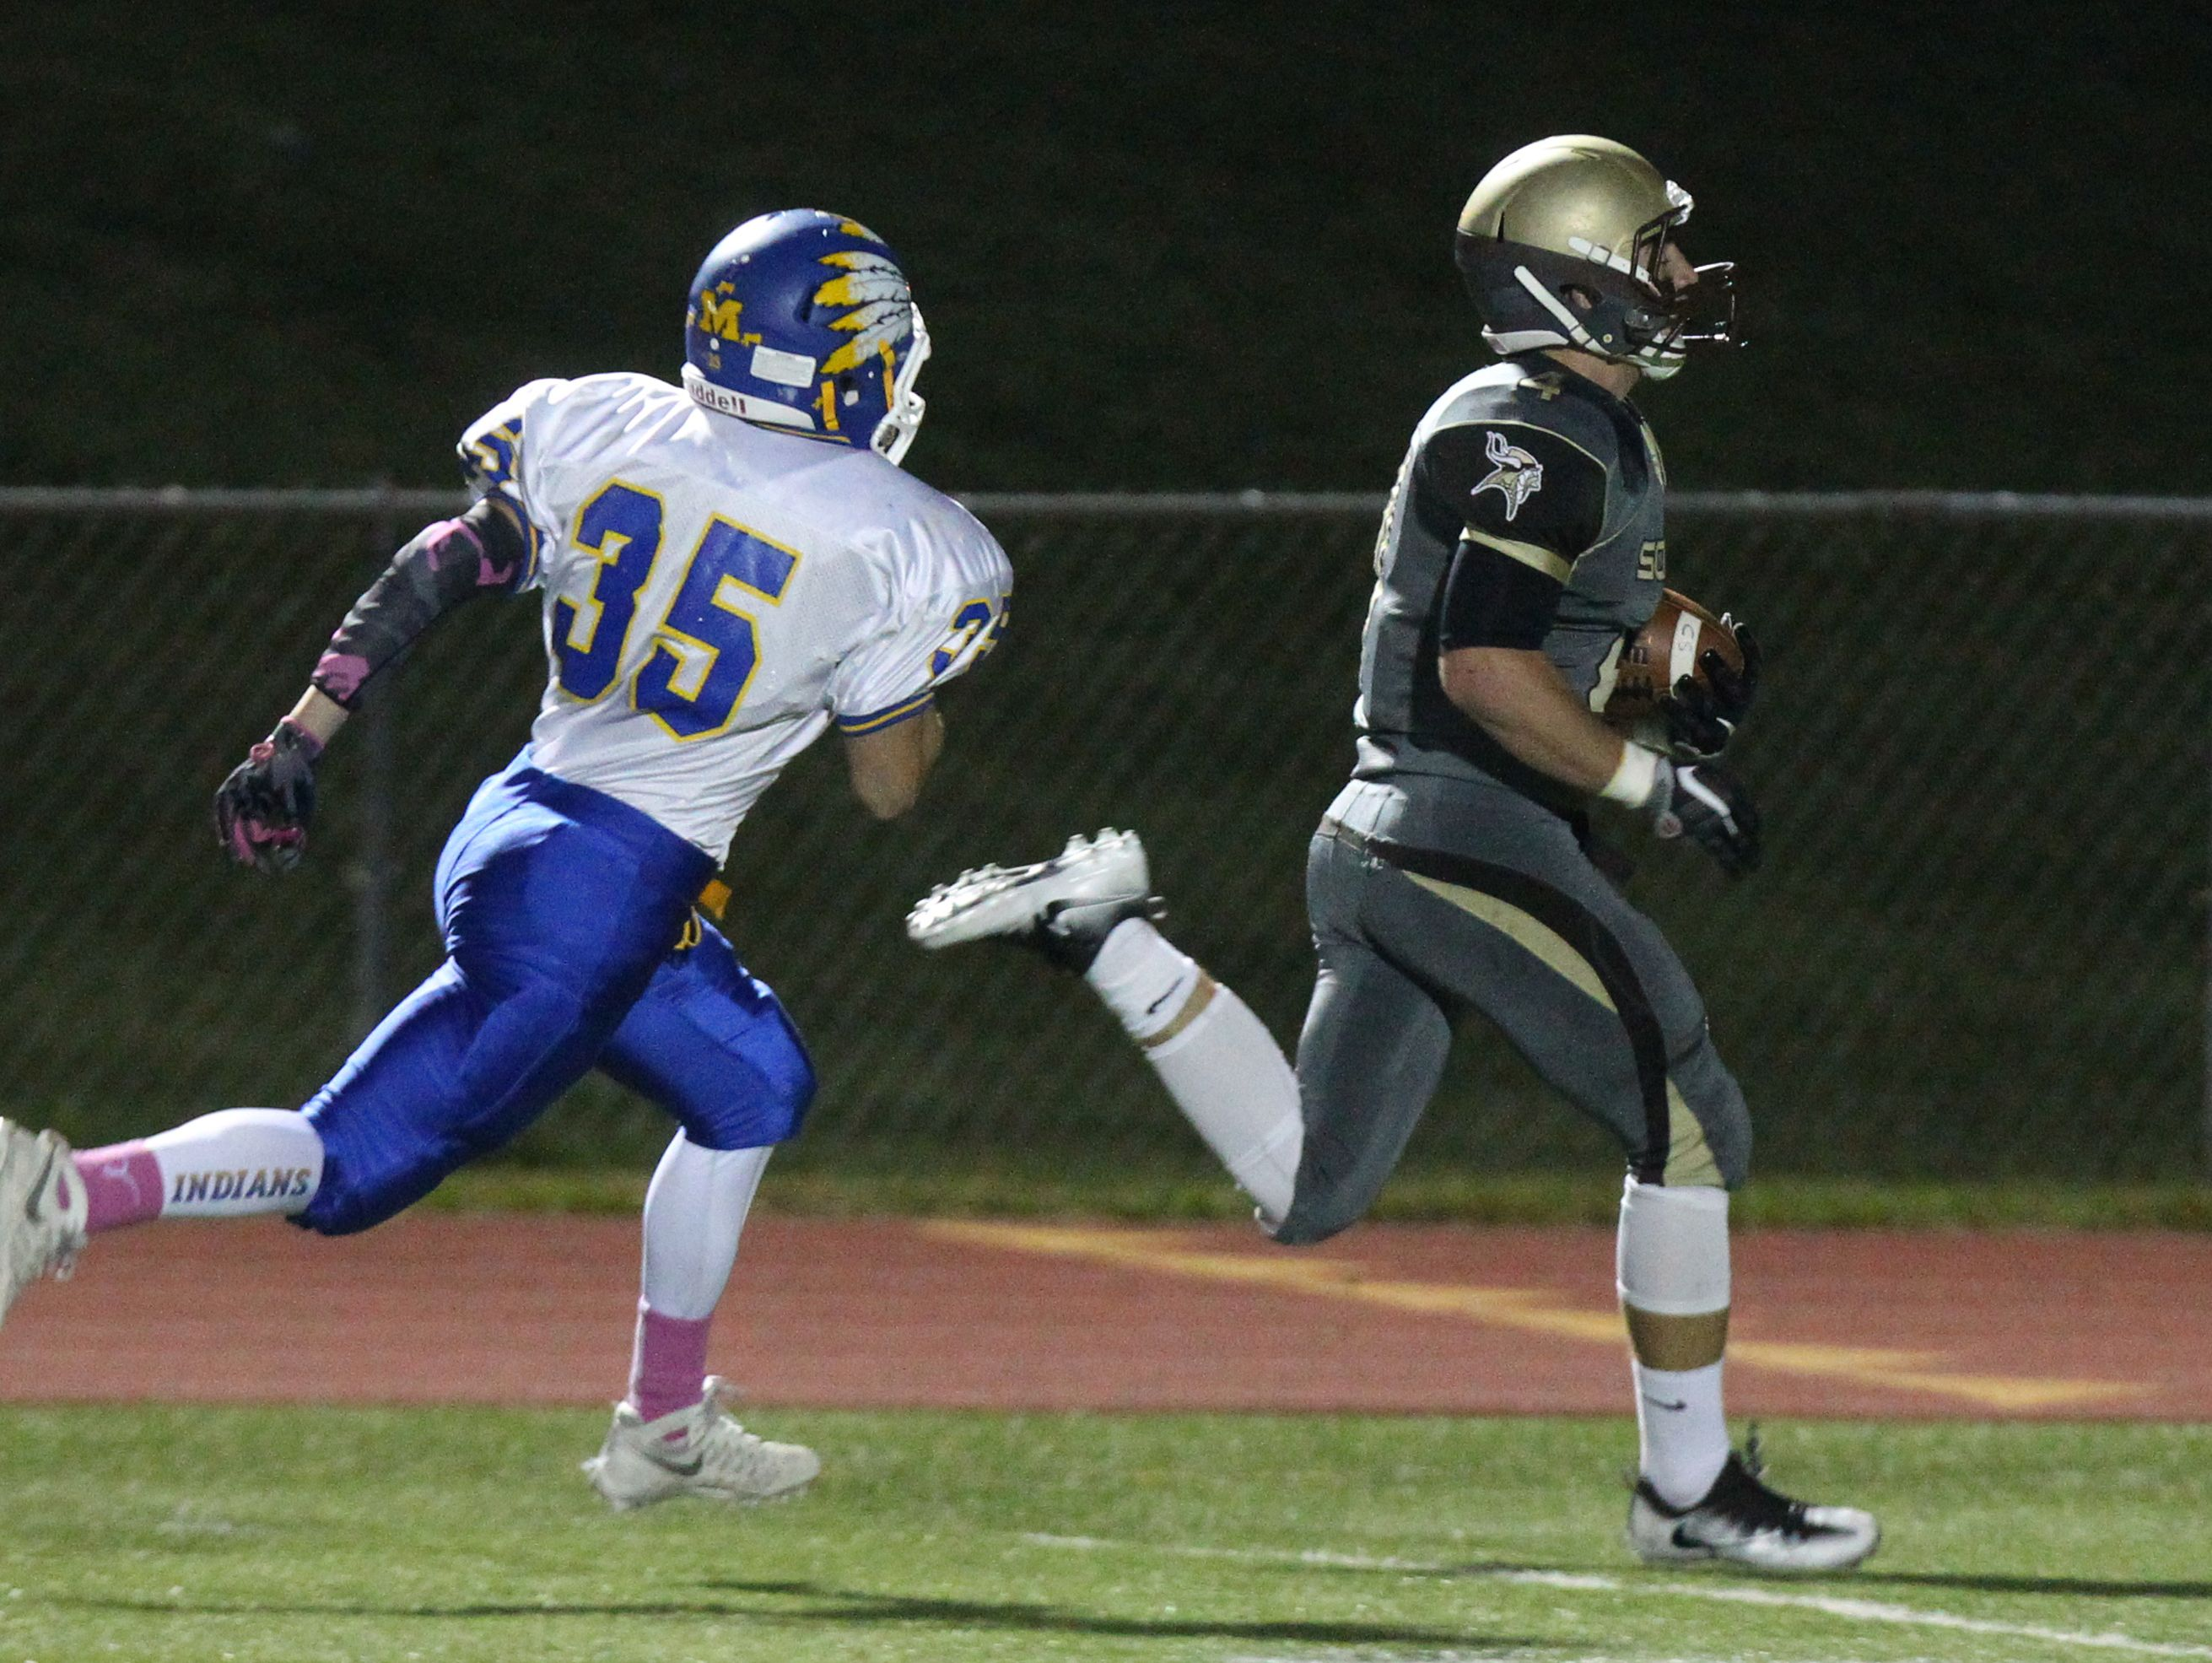 Clarkstown South's Kyle Samuels runs for a touchdown as Mahopac's Anthony Ocello pursues during their Class AA playoff game at Clarkstown South Oct. 14, 2016.